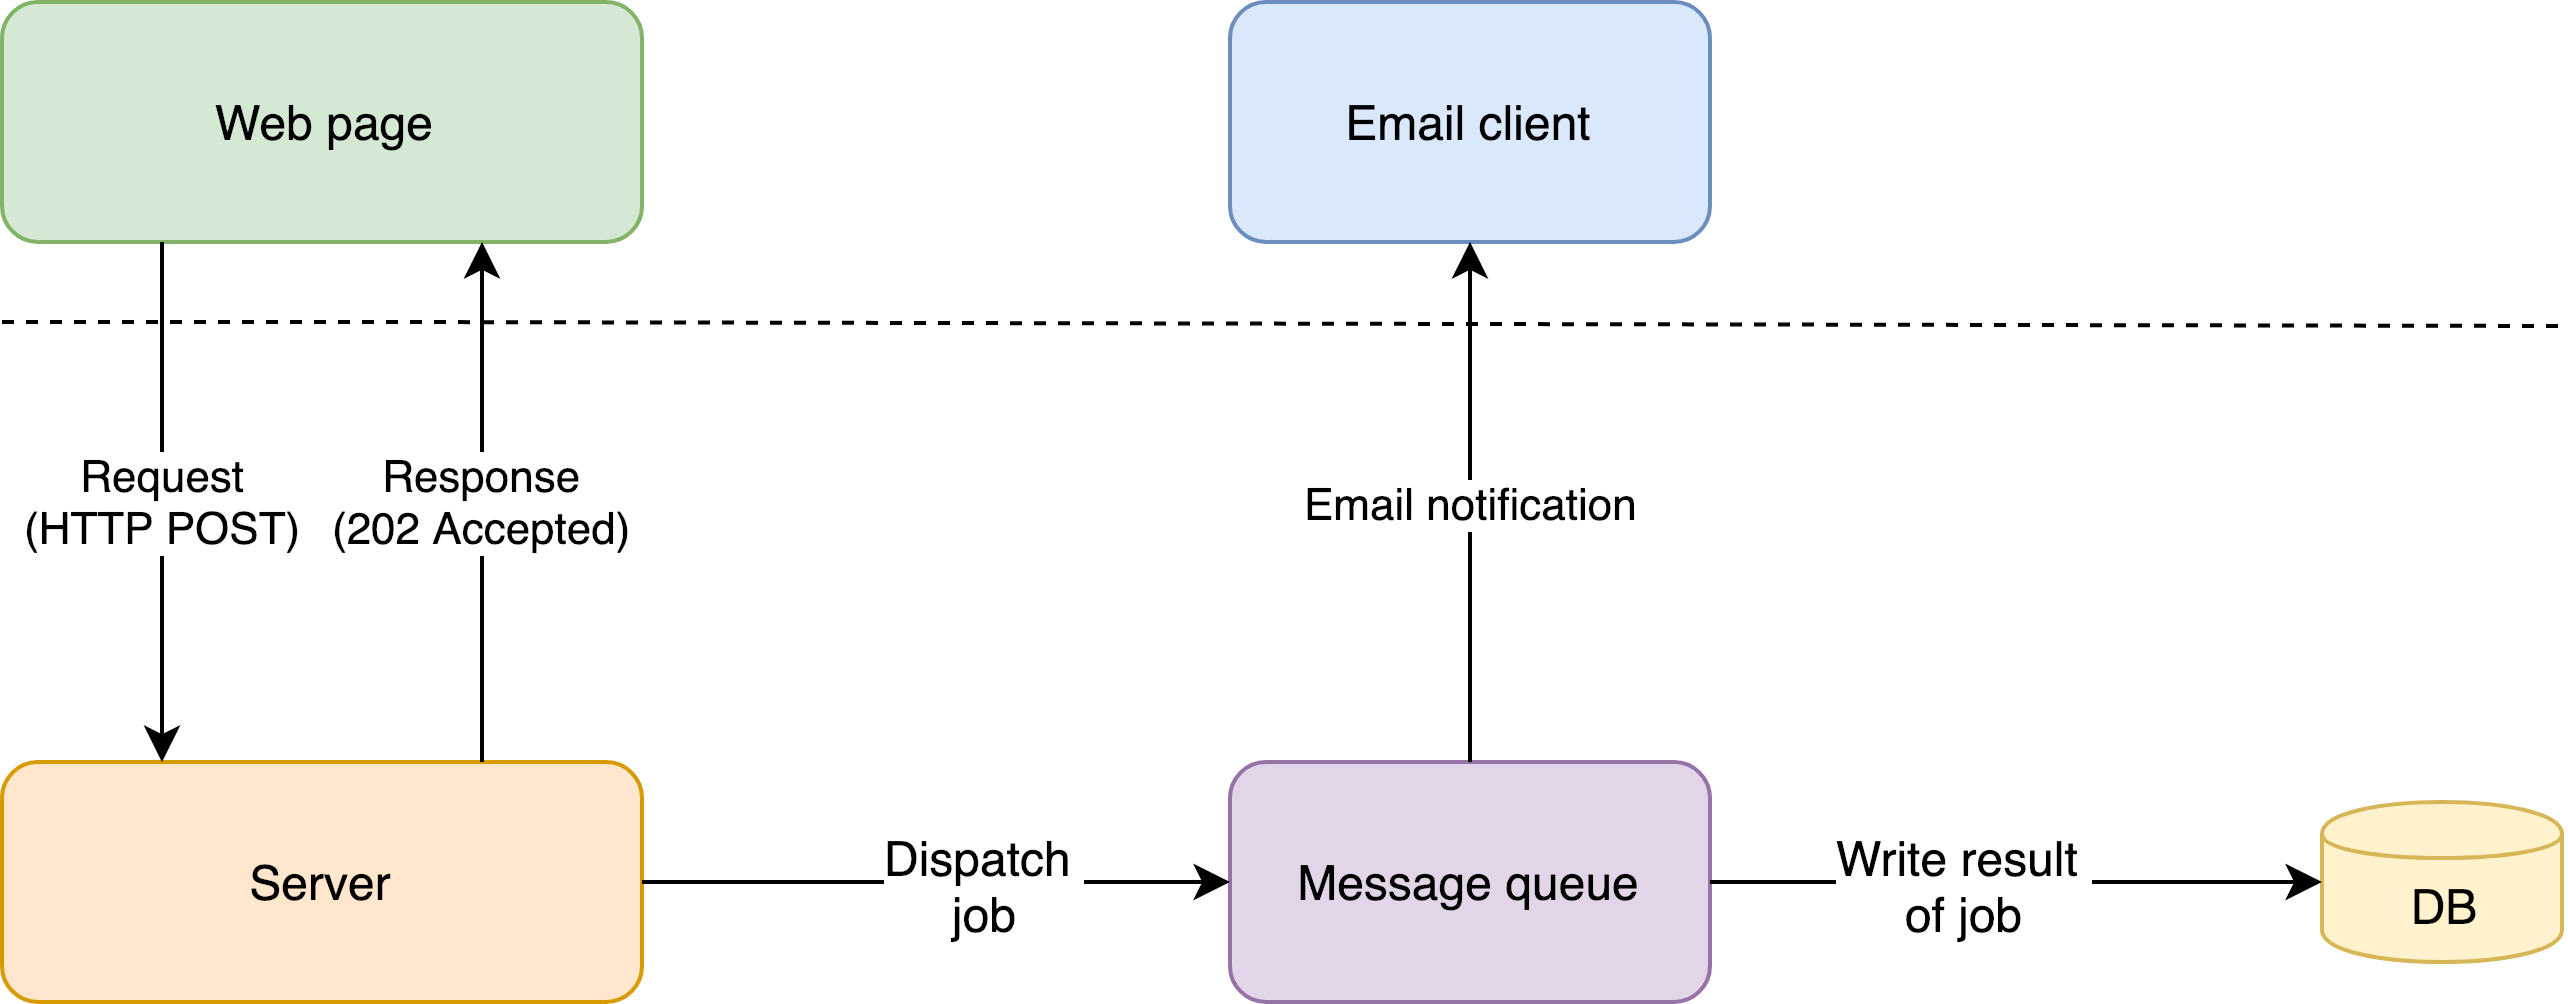 Web app architecture with message queue